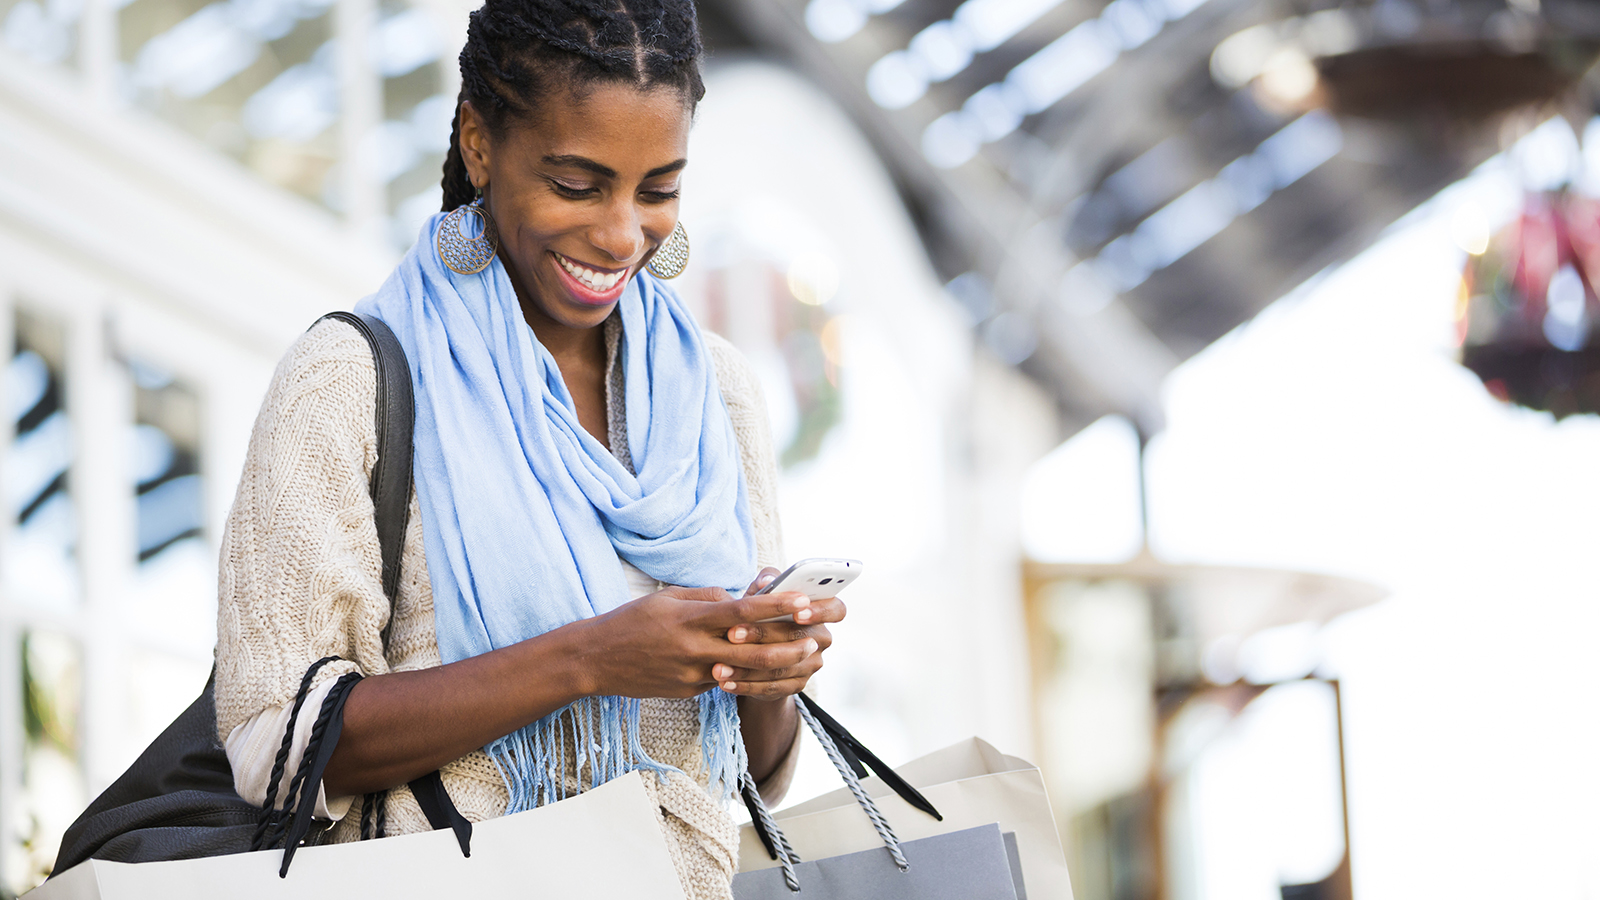 Woman holding shopping bags and checking out online deals on her mobile phone.